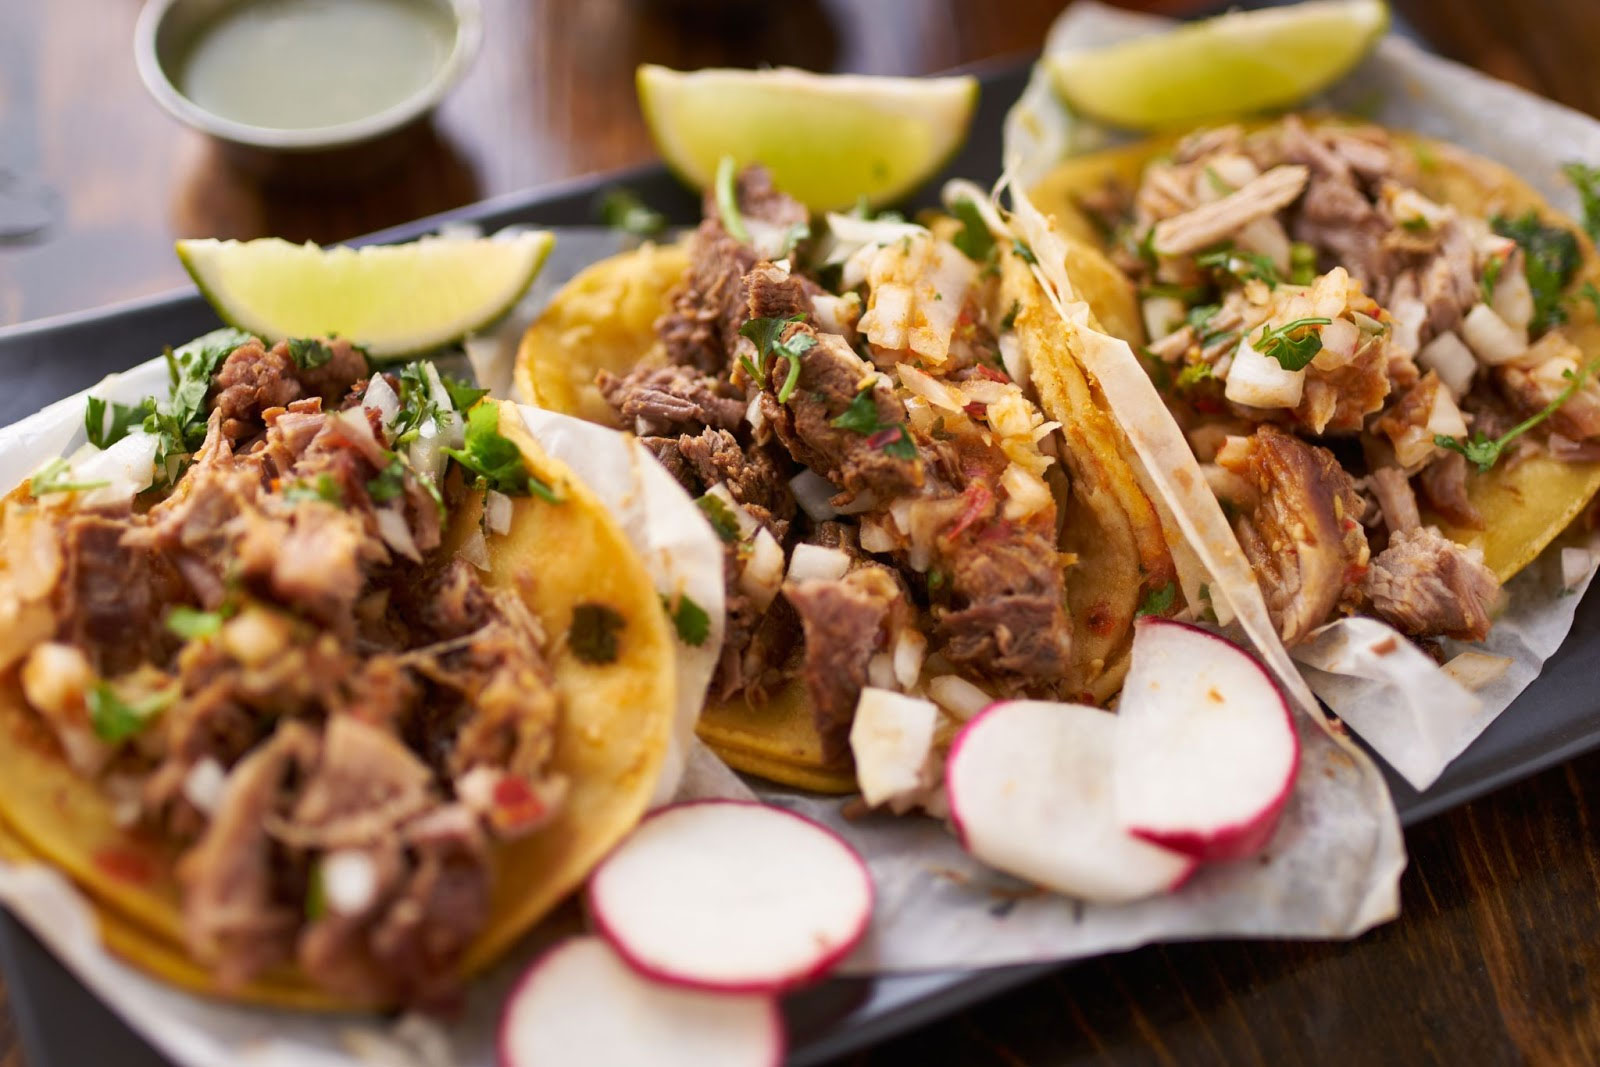 Tacos platted and ready to serve.